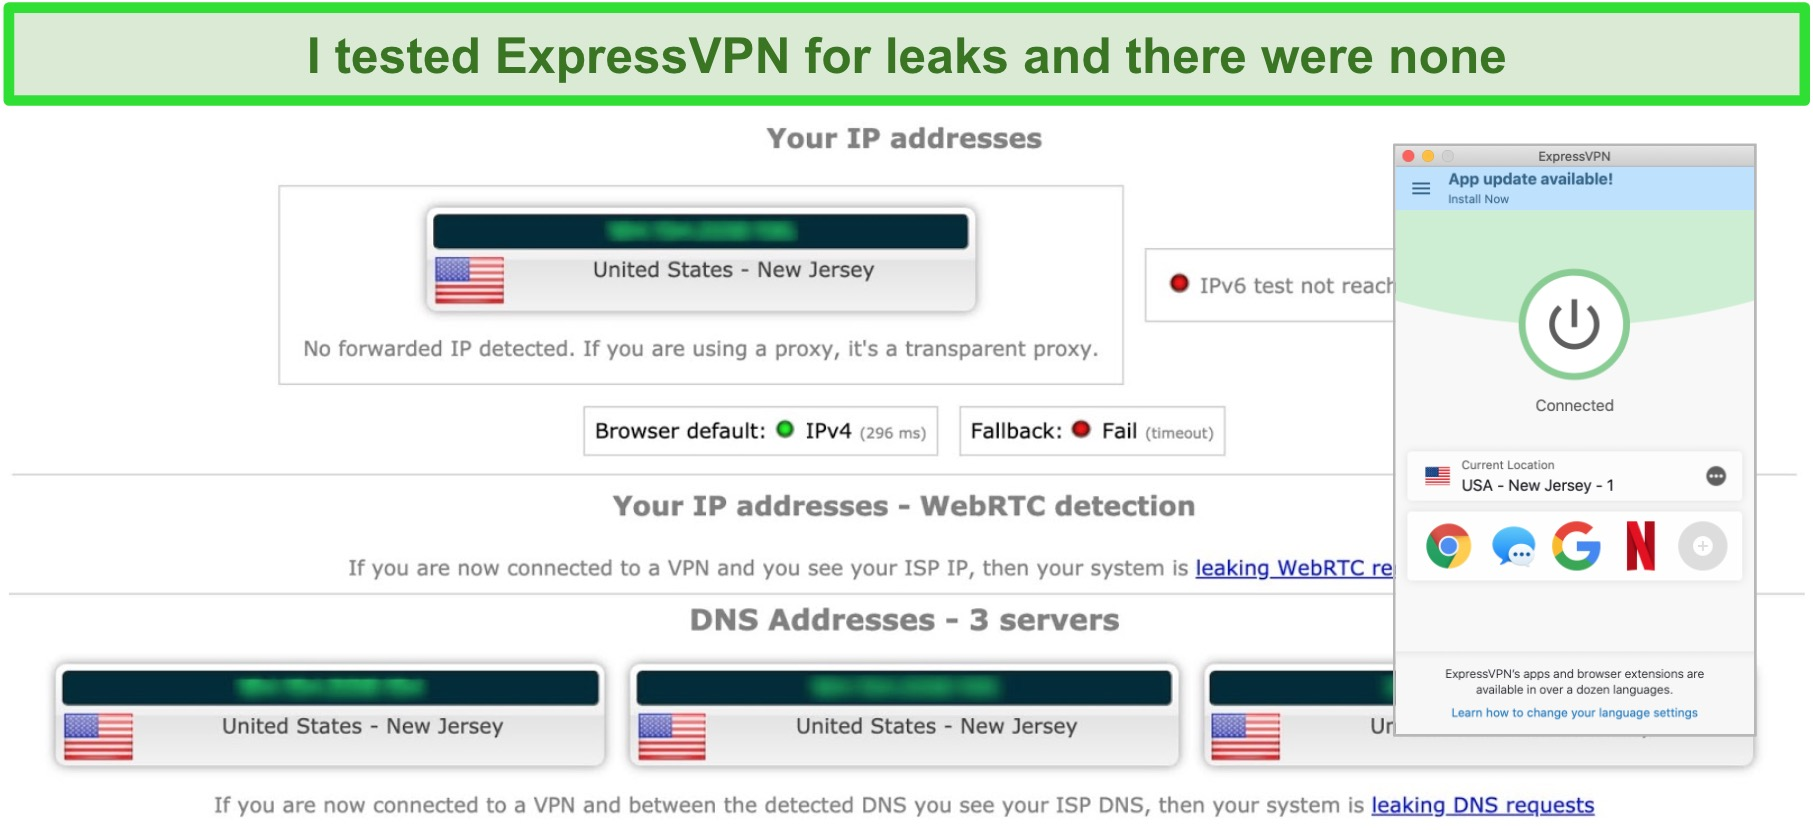 Screenshot of ExpressVPN successfully passing an IP, WebRTC, and DNS leak test while connected to a server in the US